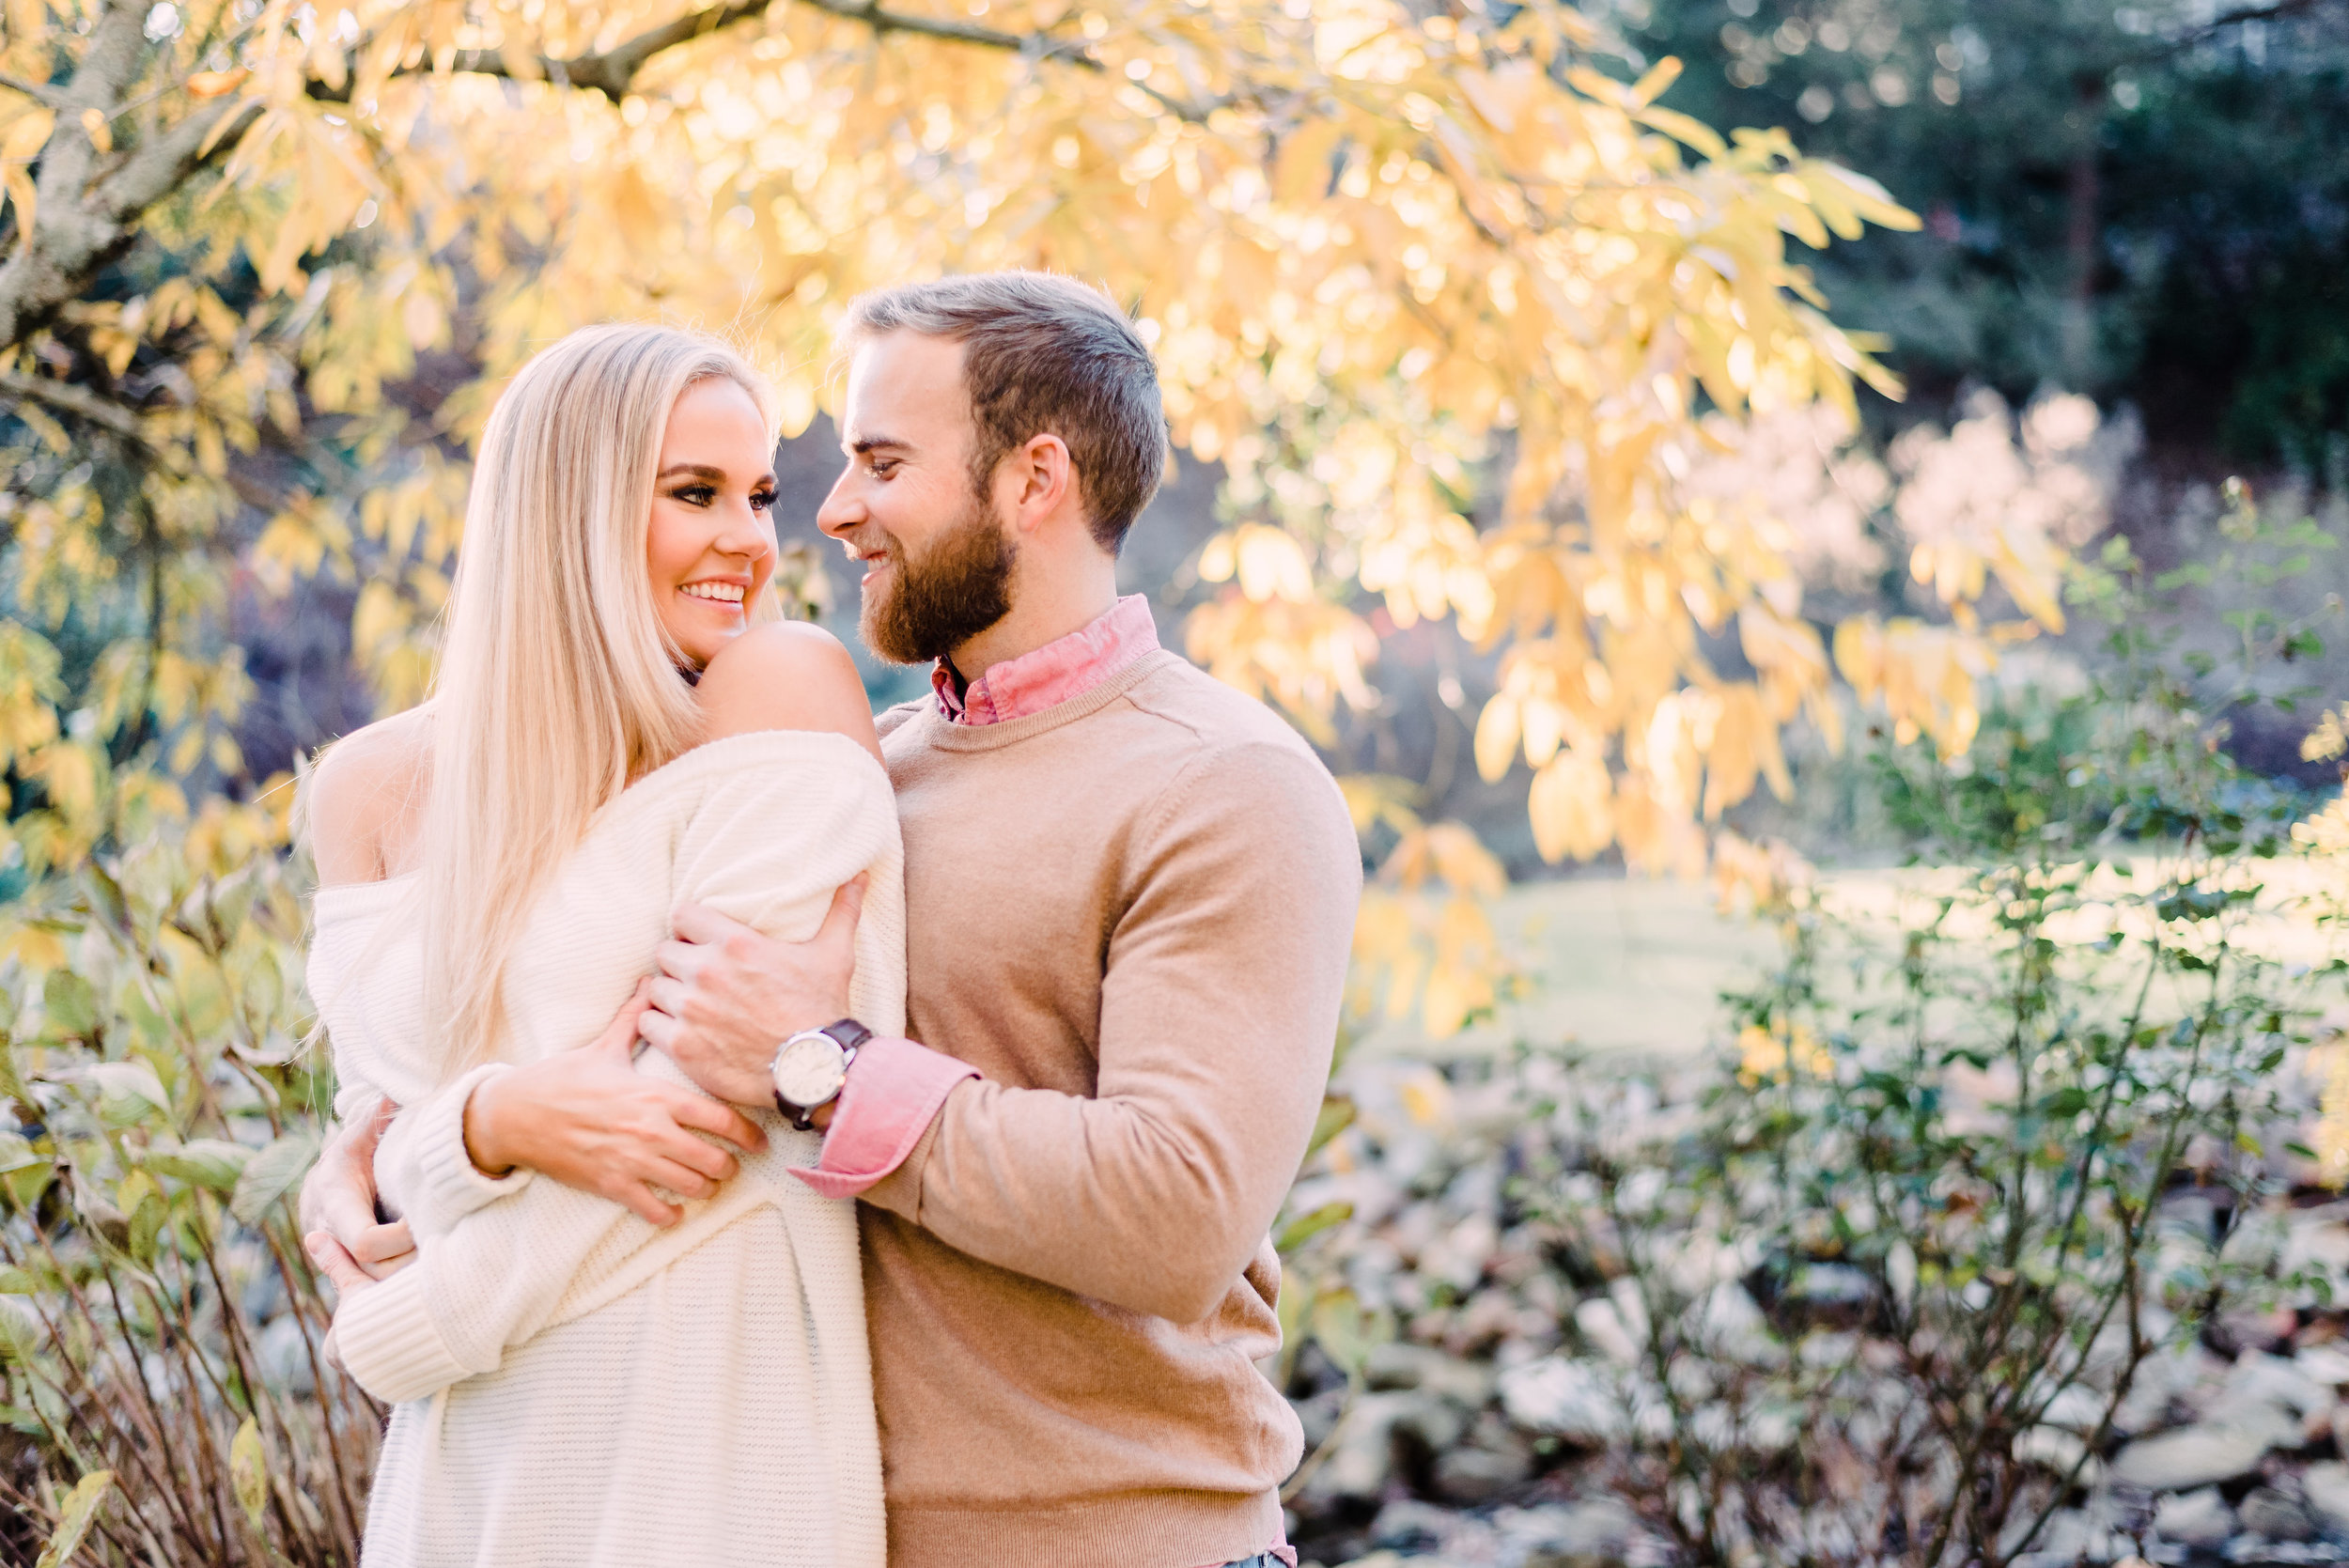 Kirby_Mobley_engaged-27.jpg